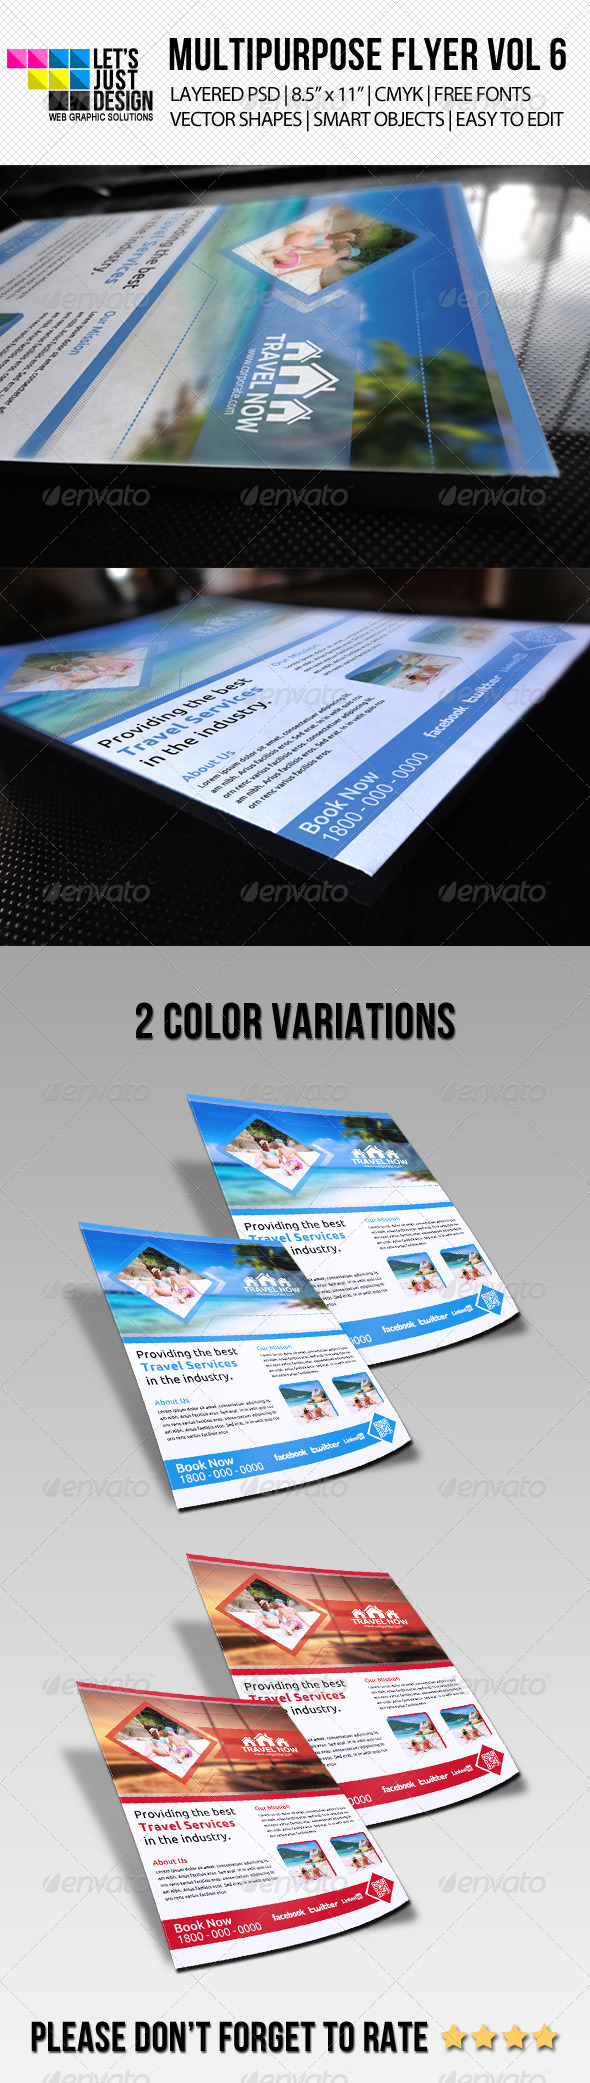 Multipurpose Flyer Template Vol 6 - Commerce Flyers